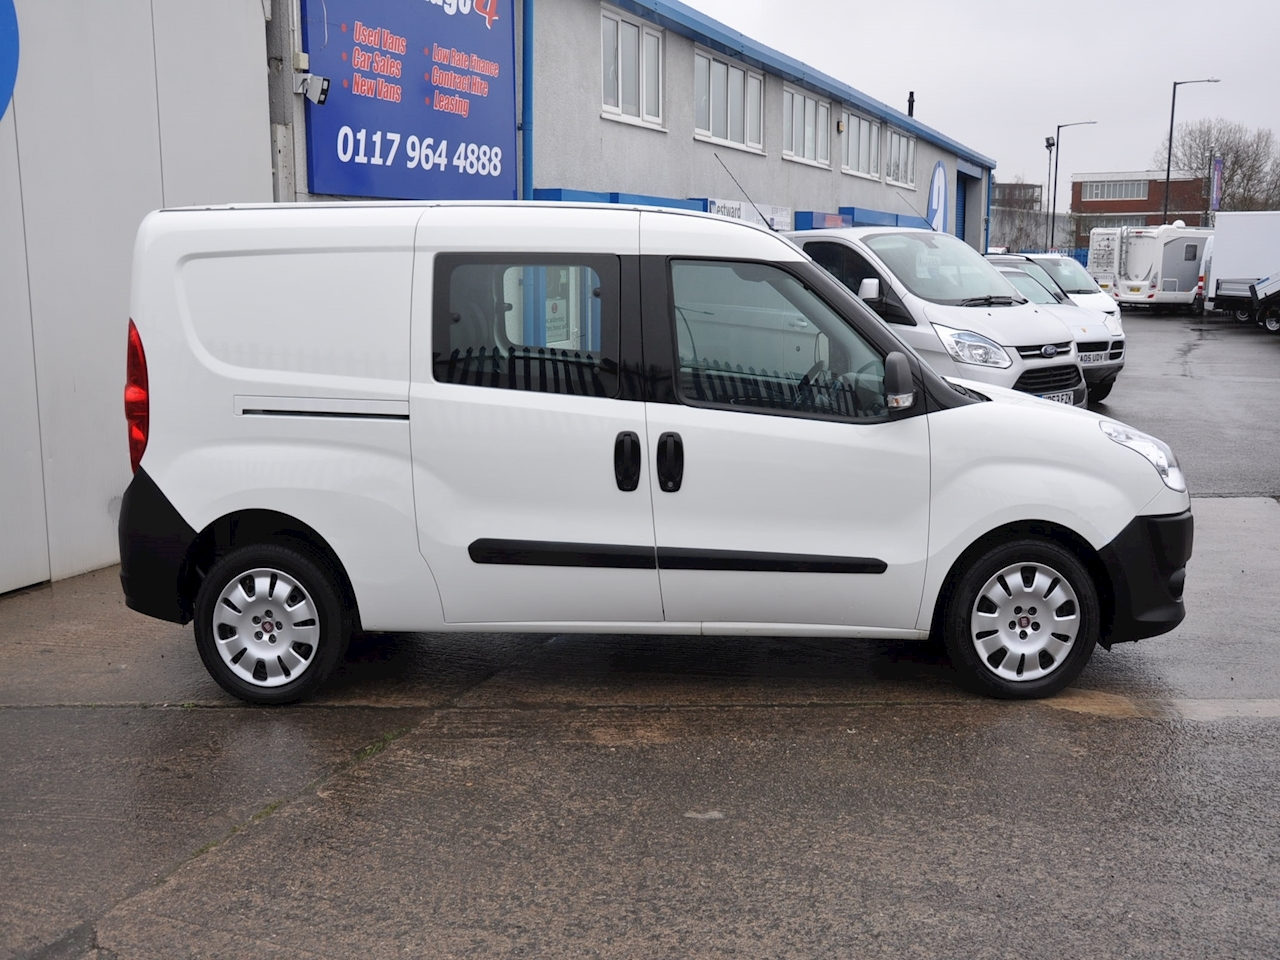 used fiat doblo cargo 16v maxi multijet combi 2013. Black Bedroom Furniture Sets. Home Design Ideas